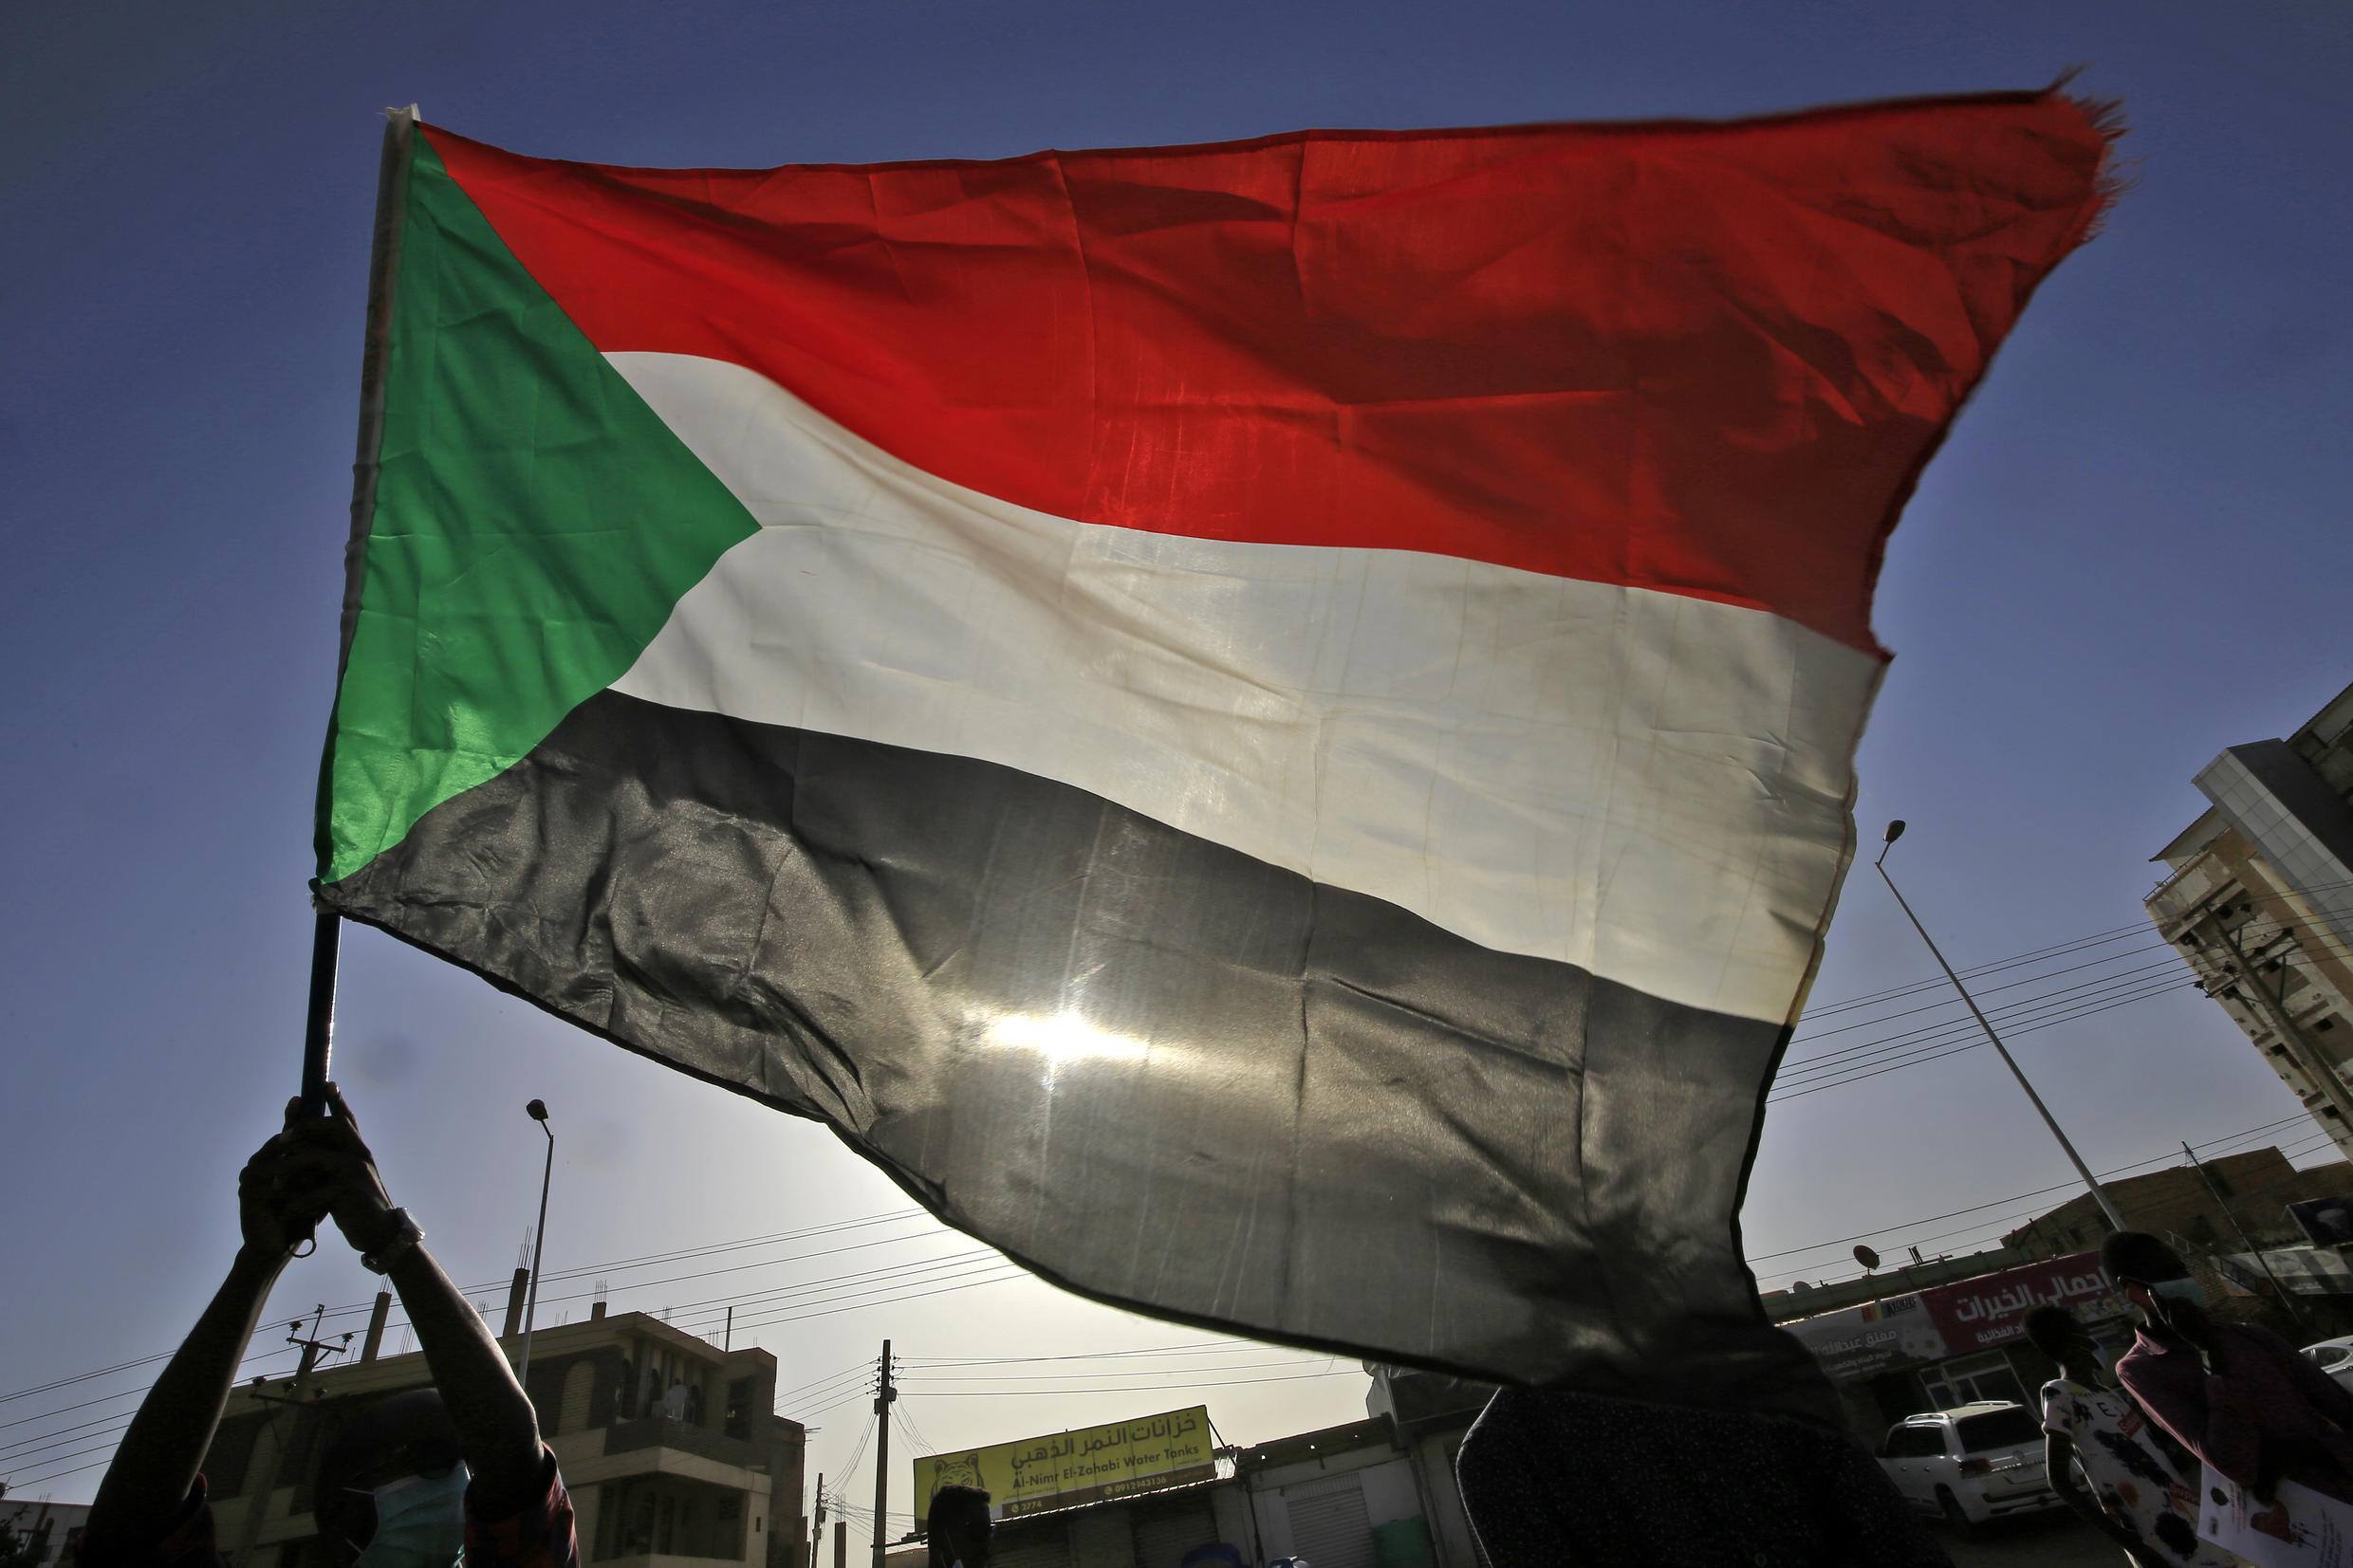 A Sudanese protester waves a national flag in the capital Khartoum in June 2020